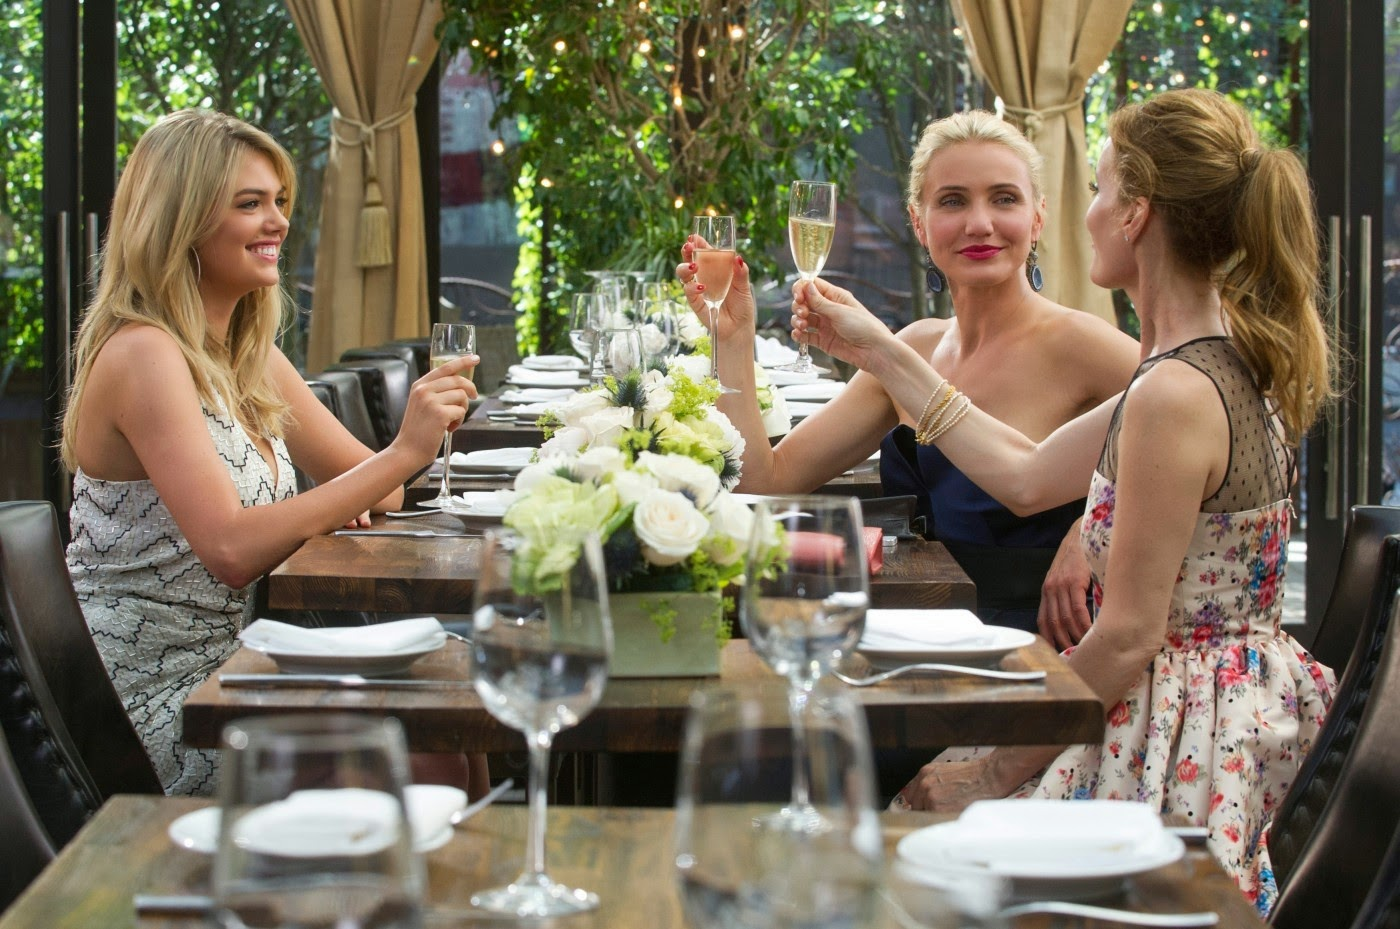 Movie Review: The Other Woman (2014) — Naharnet